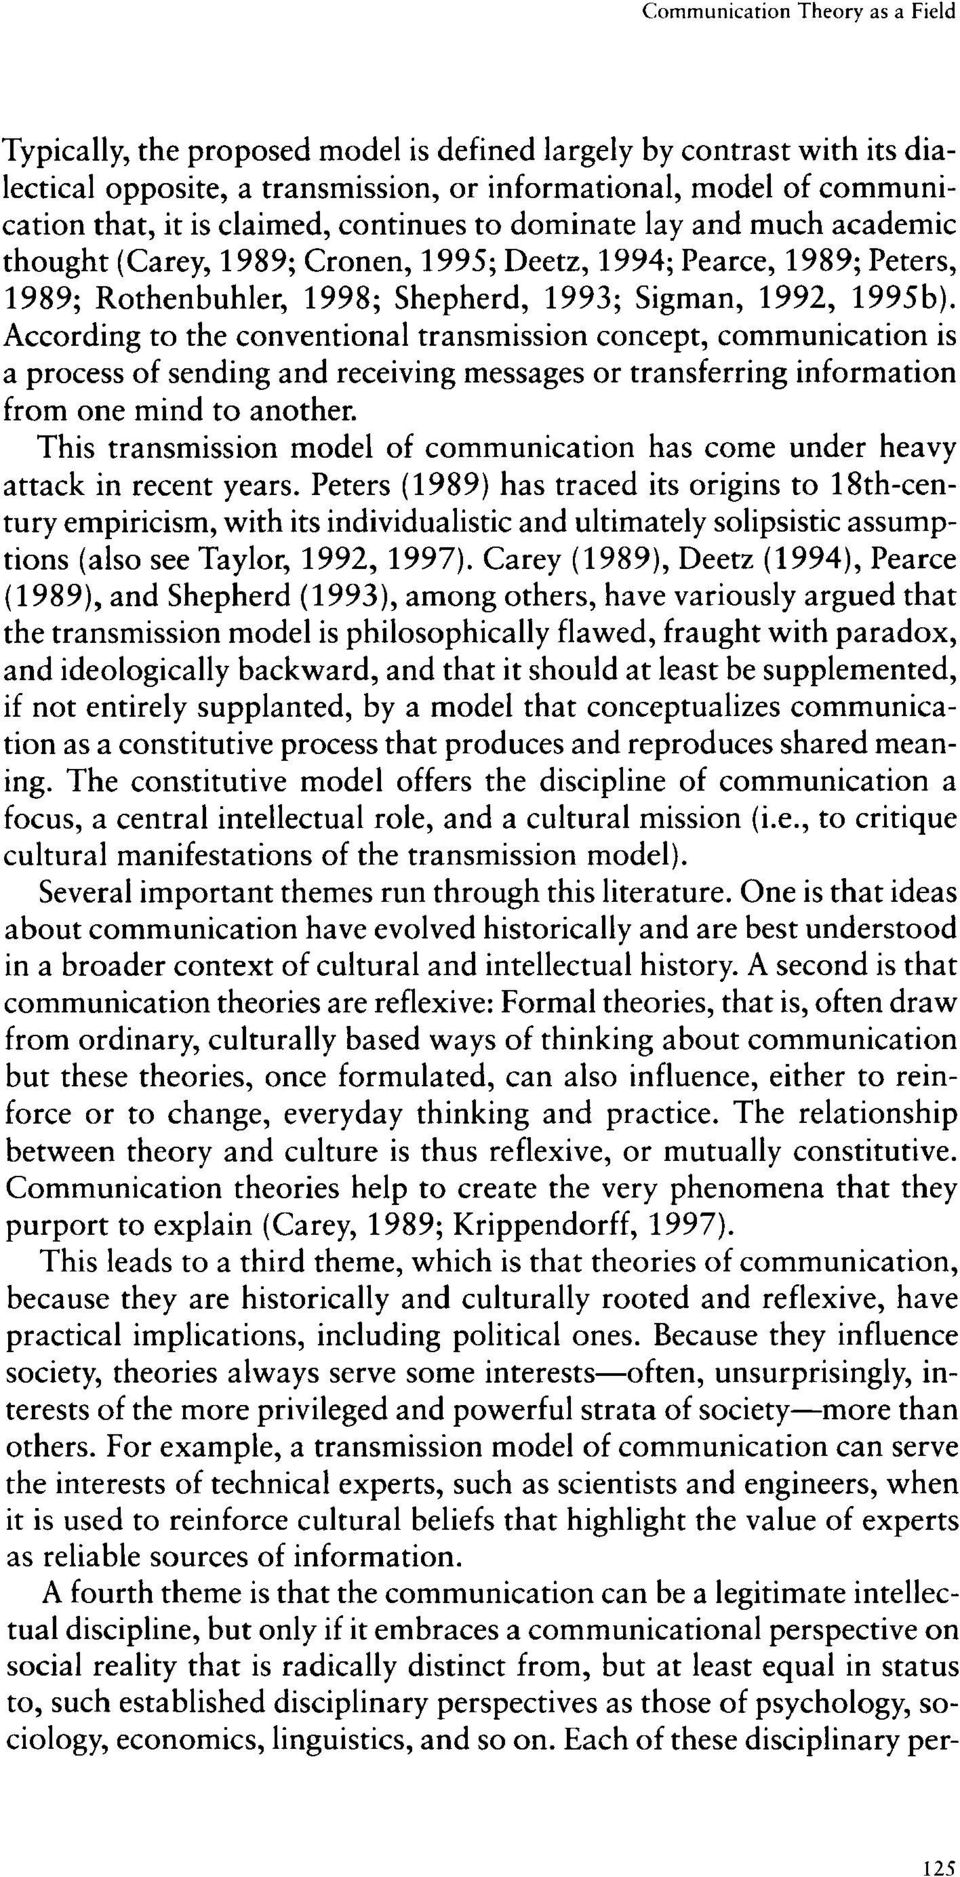 According to the conventional transmission concept, communication is a process of sending and receiving messages or transferring information from one mind to another.